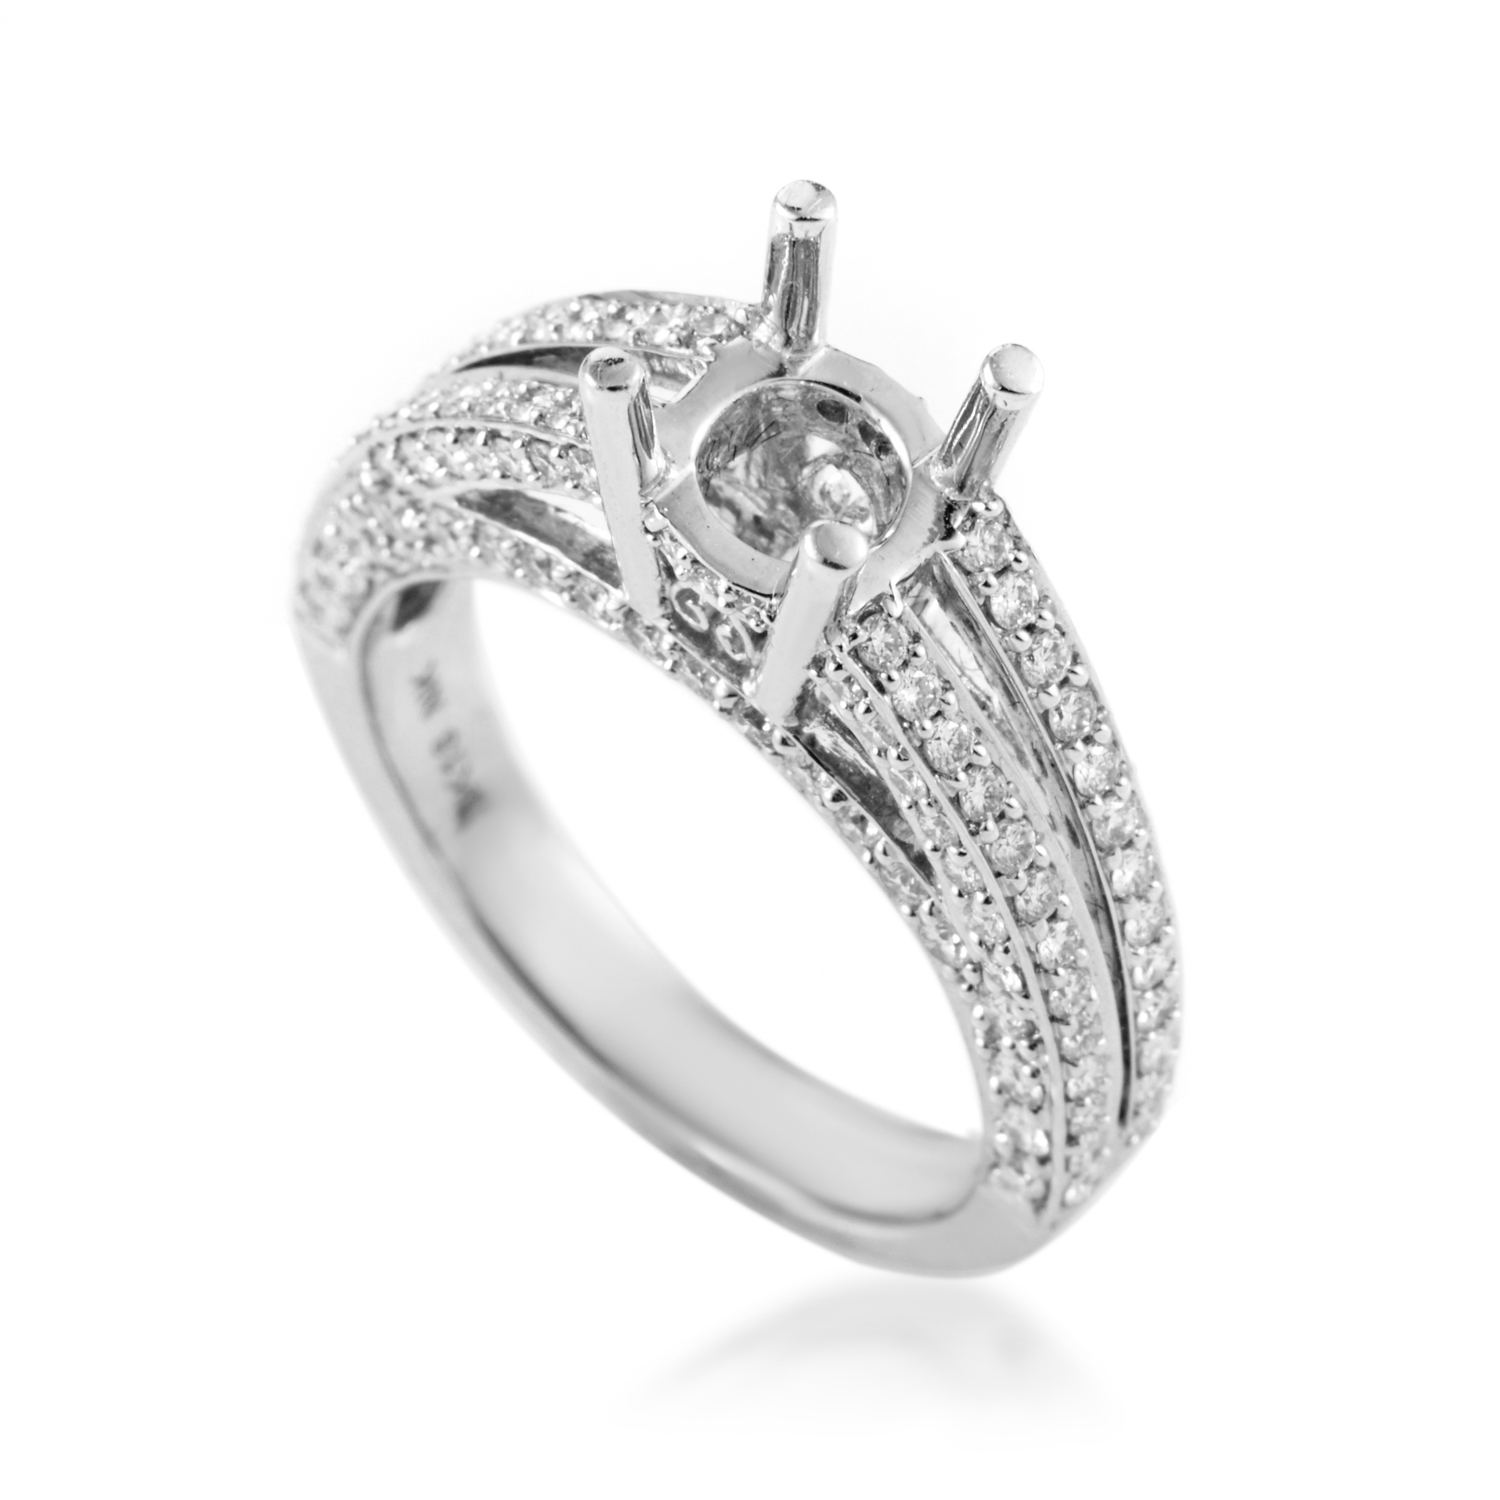 Women's 18K White Gold Diamond Engagement Ring Mounting RE8-10117W